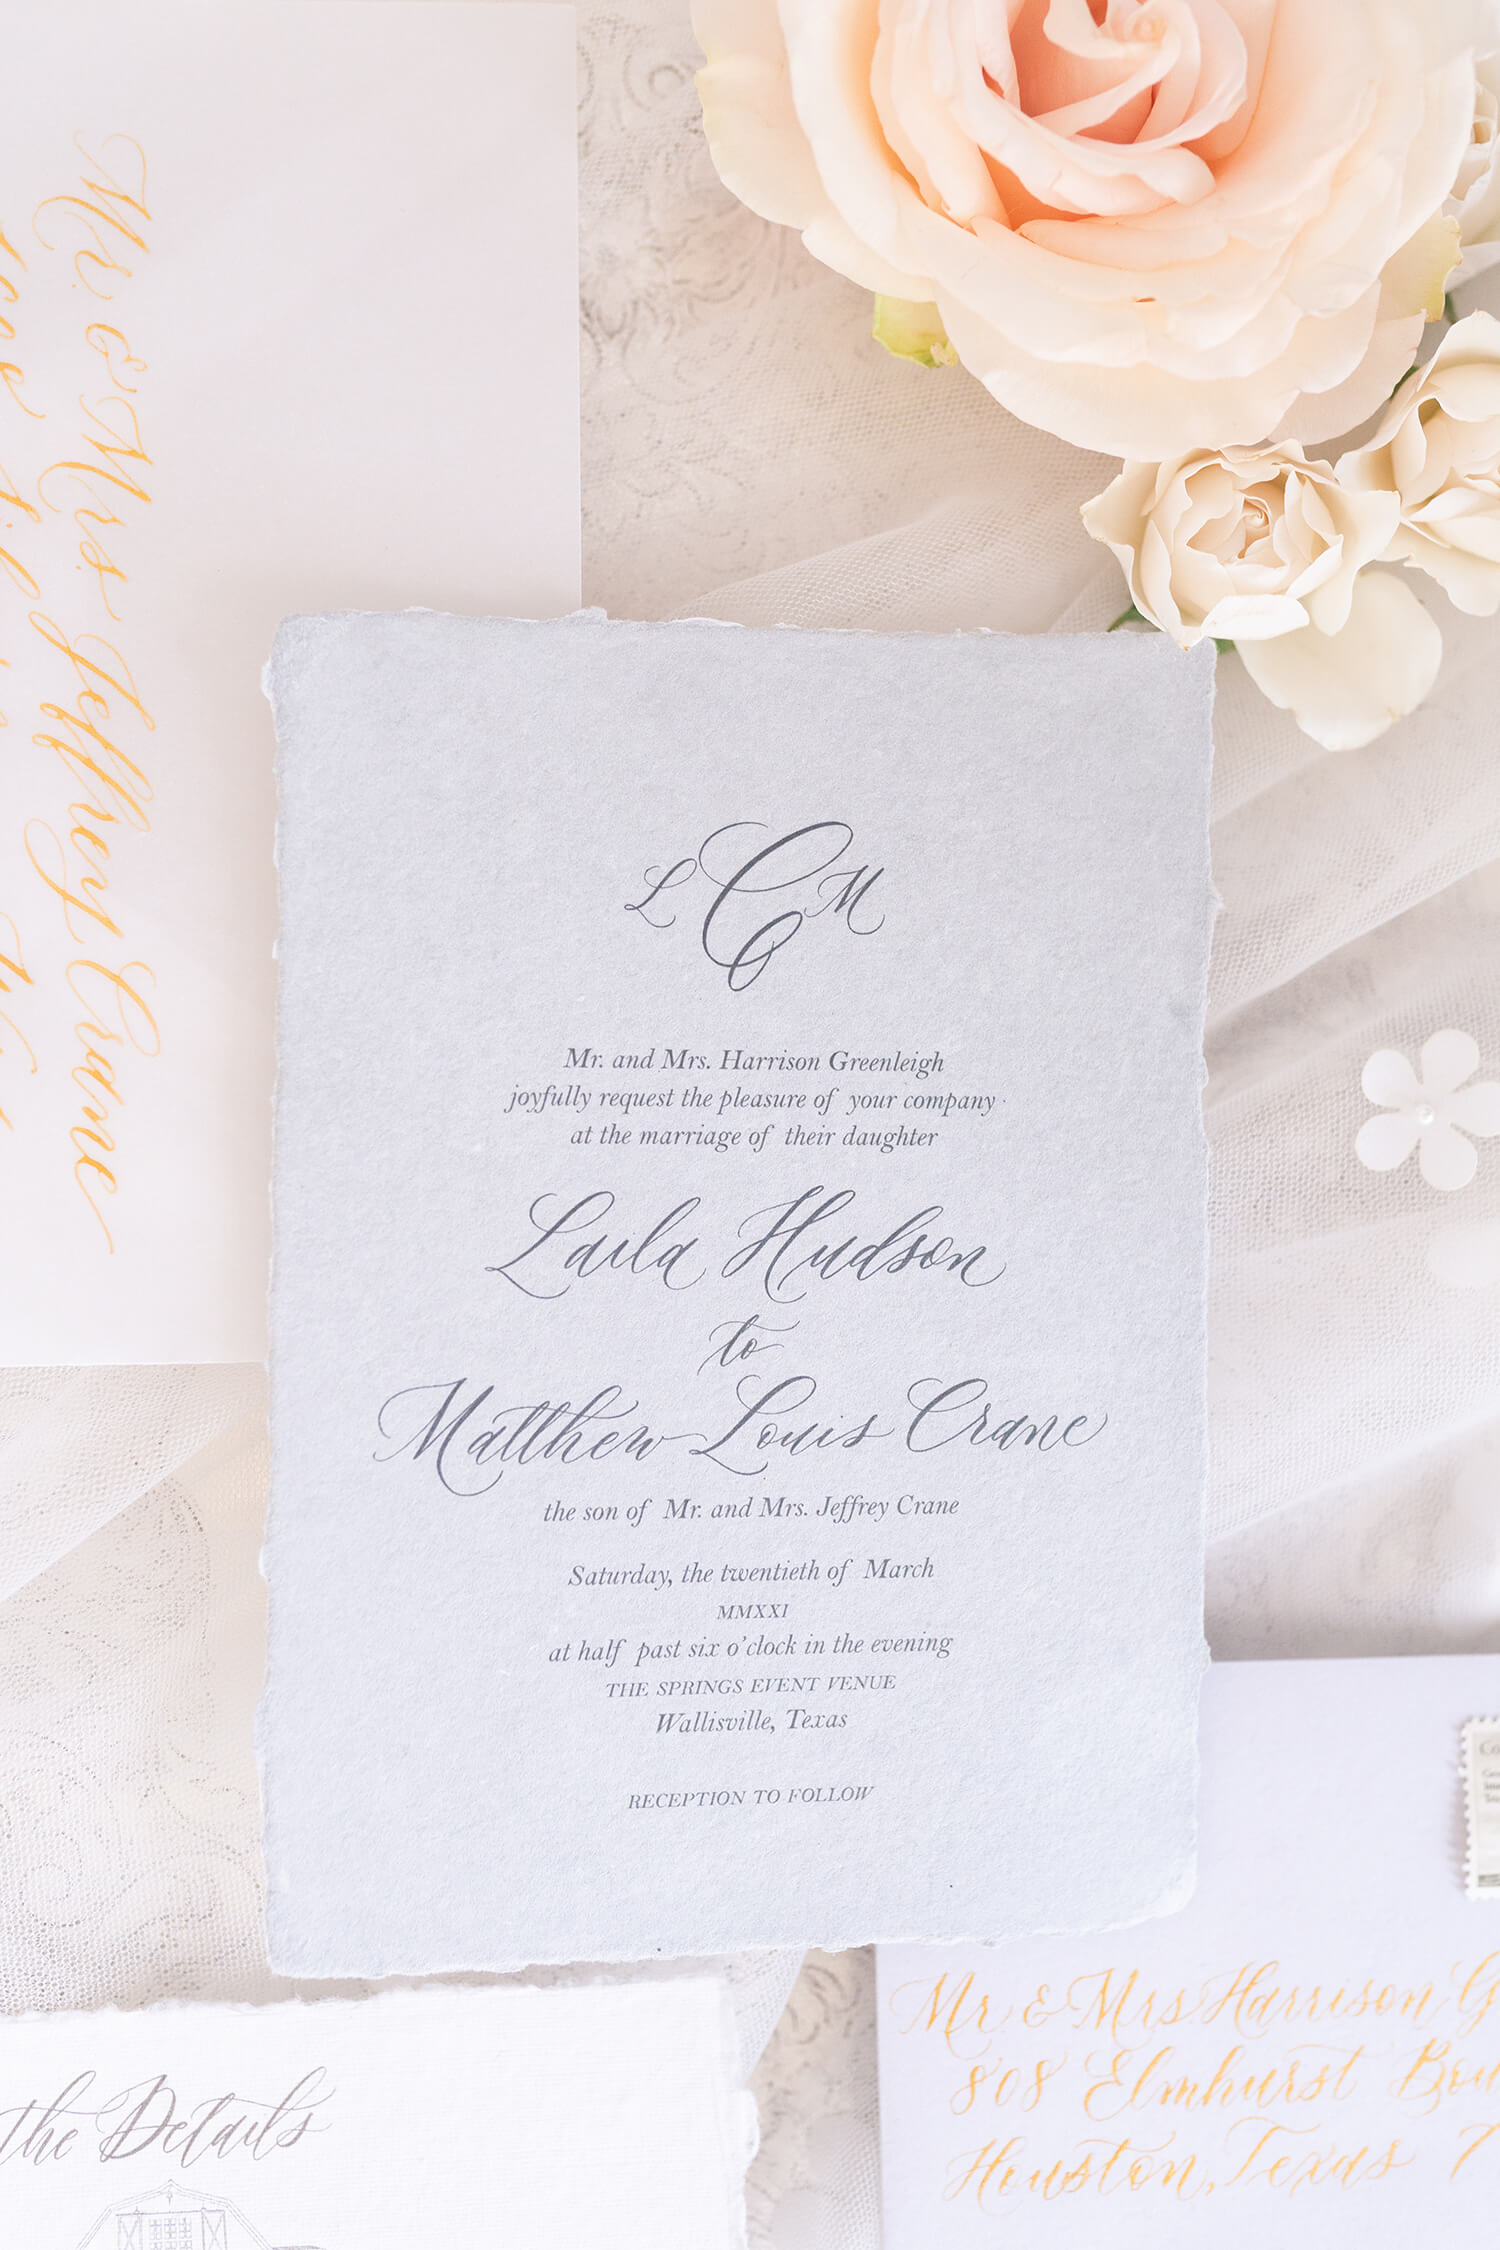 cursive wedding invitation with flowers it Wallisville Springs wedding venue in Houston Texas by Swish and Click Photography Hiring a wedding photographer